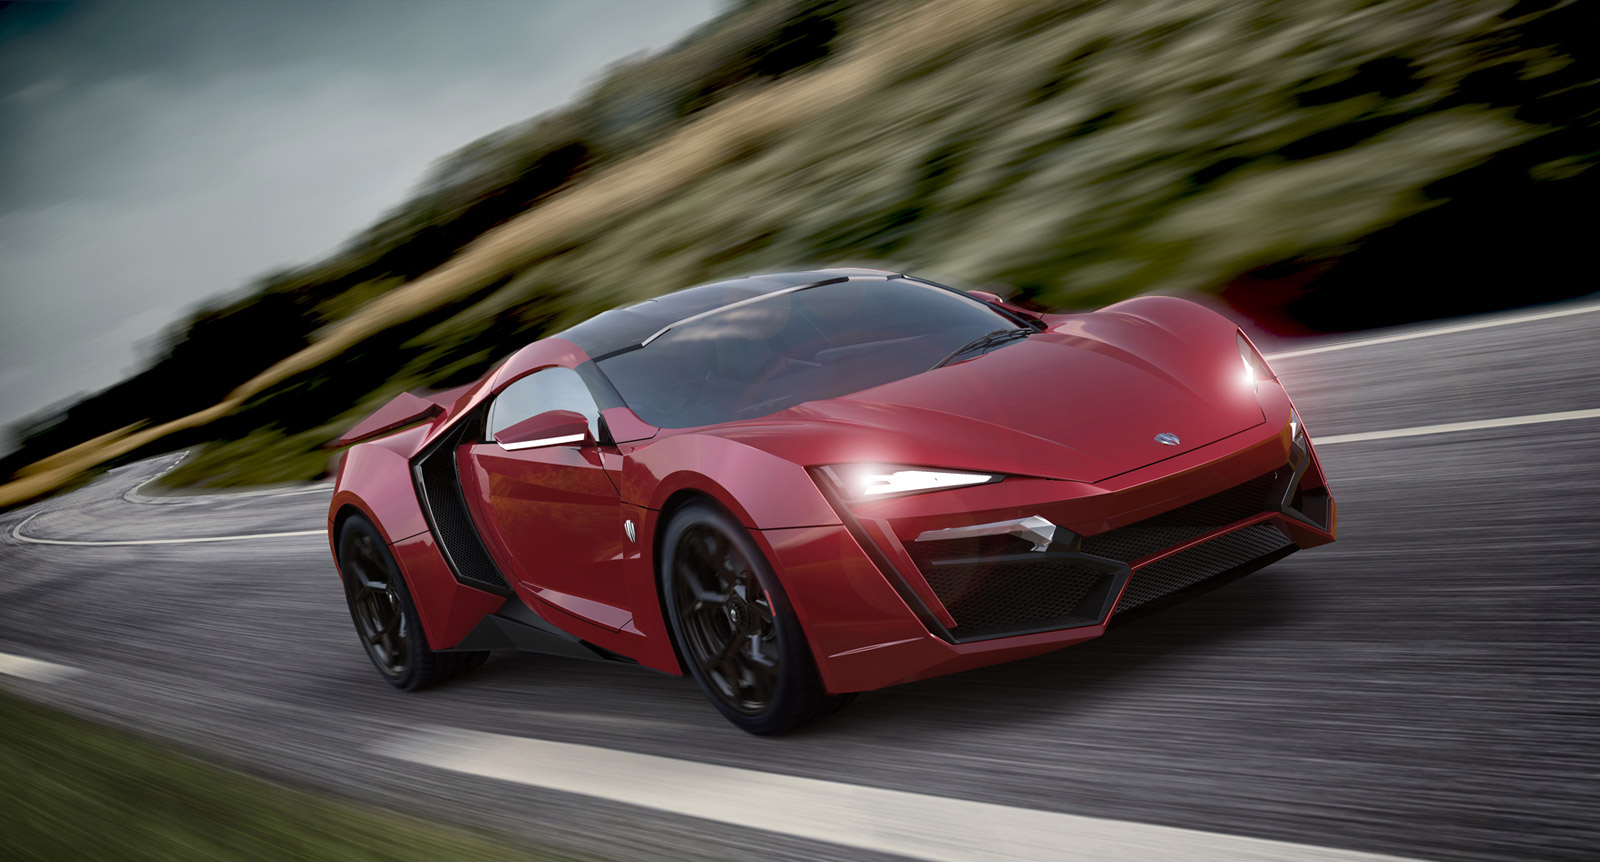 3 4 Million Lykan Hypersport Debuts In Production Trim At Dubai Motor Show